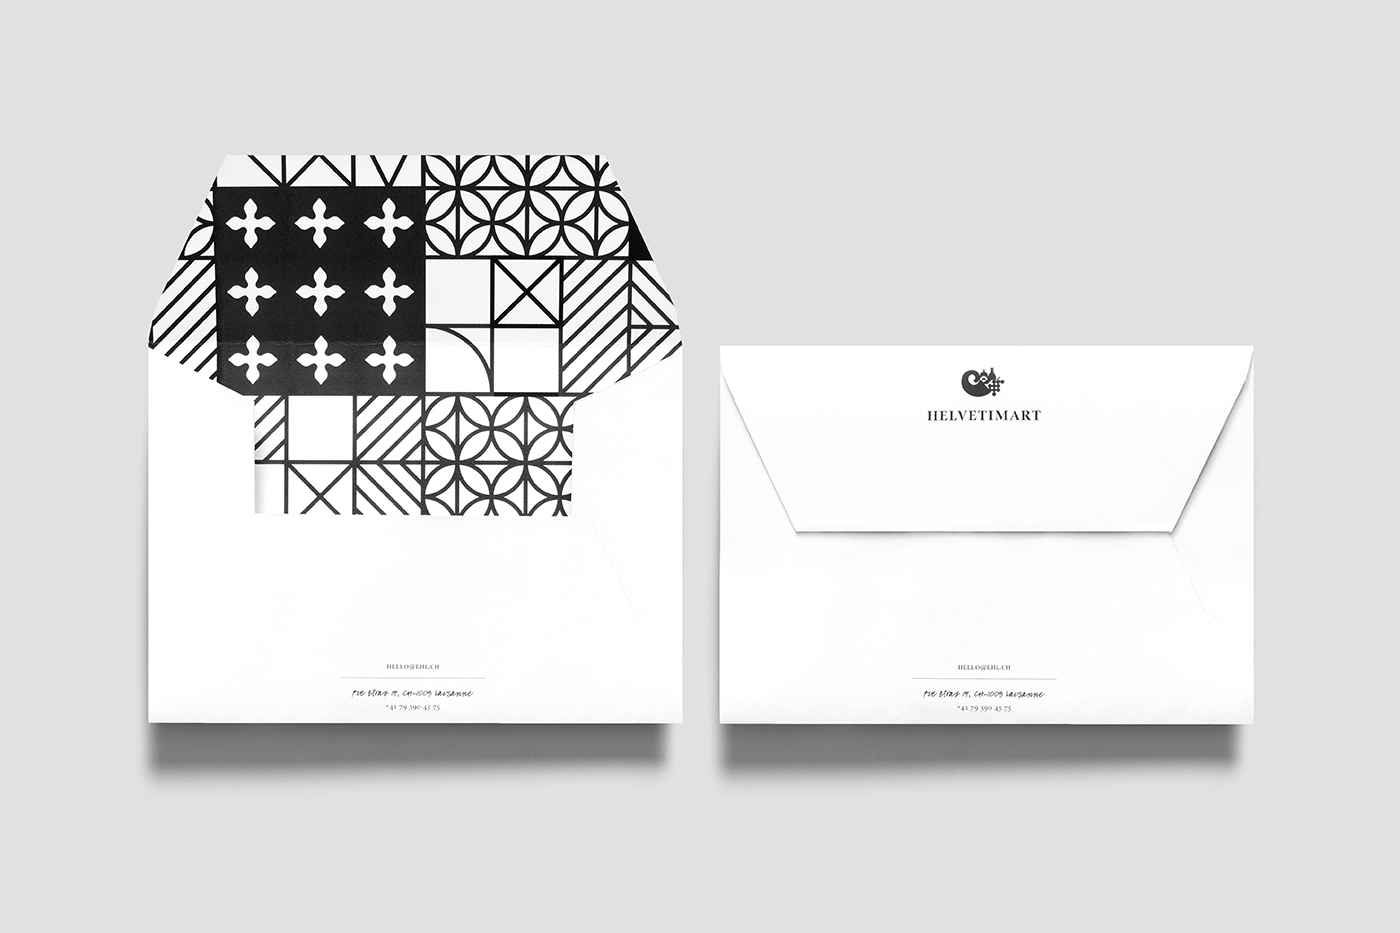 Brand identity and envelopes by Anagrama for Lausanne-based independent food and speciality supermarket Helvetimart